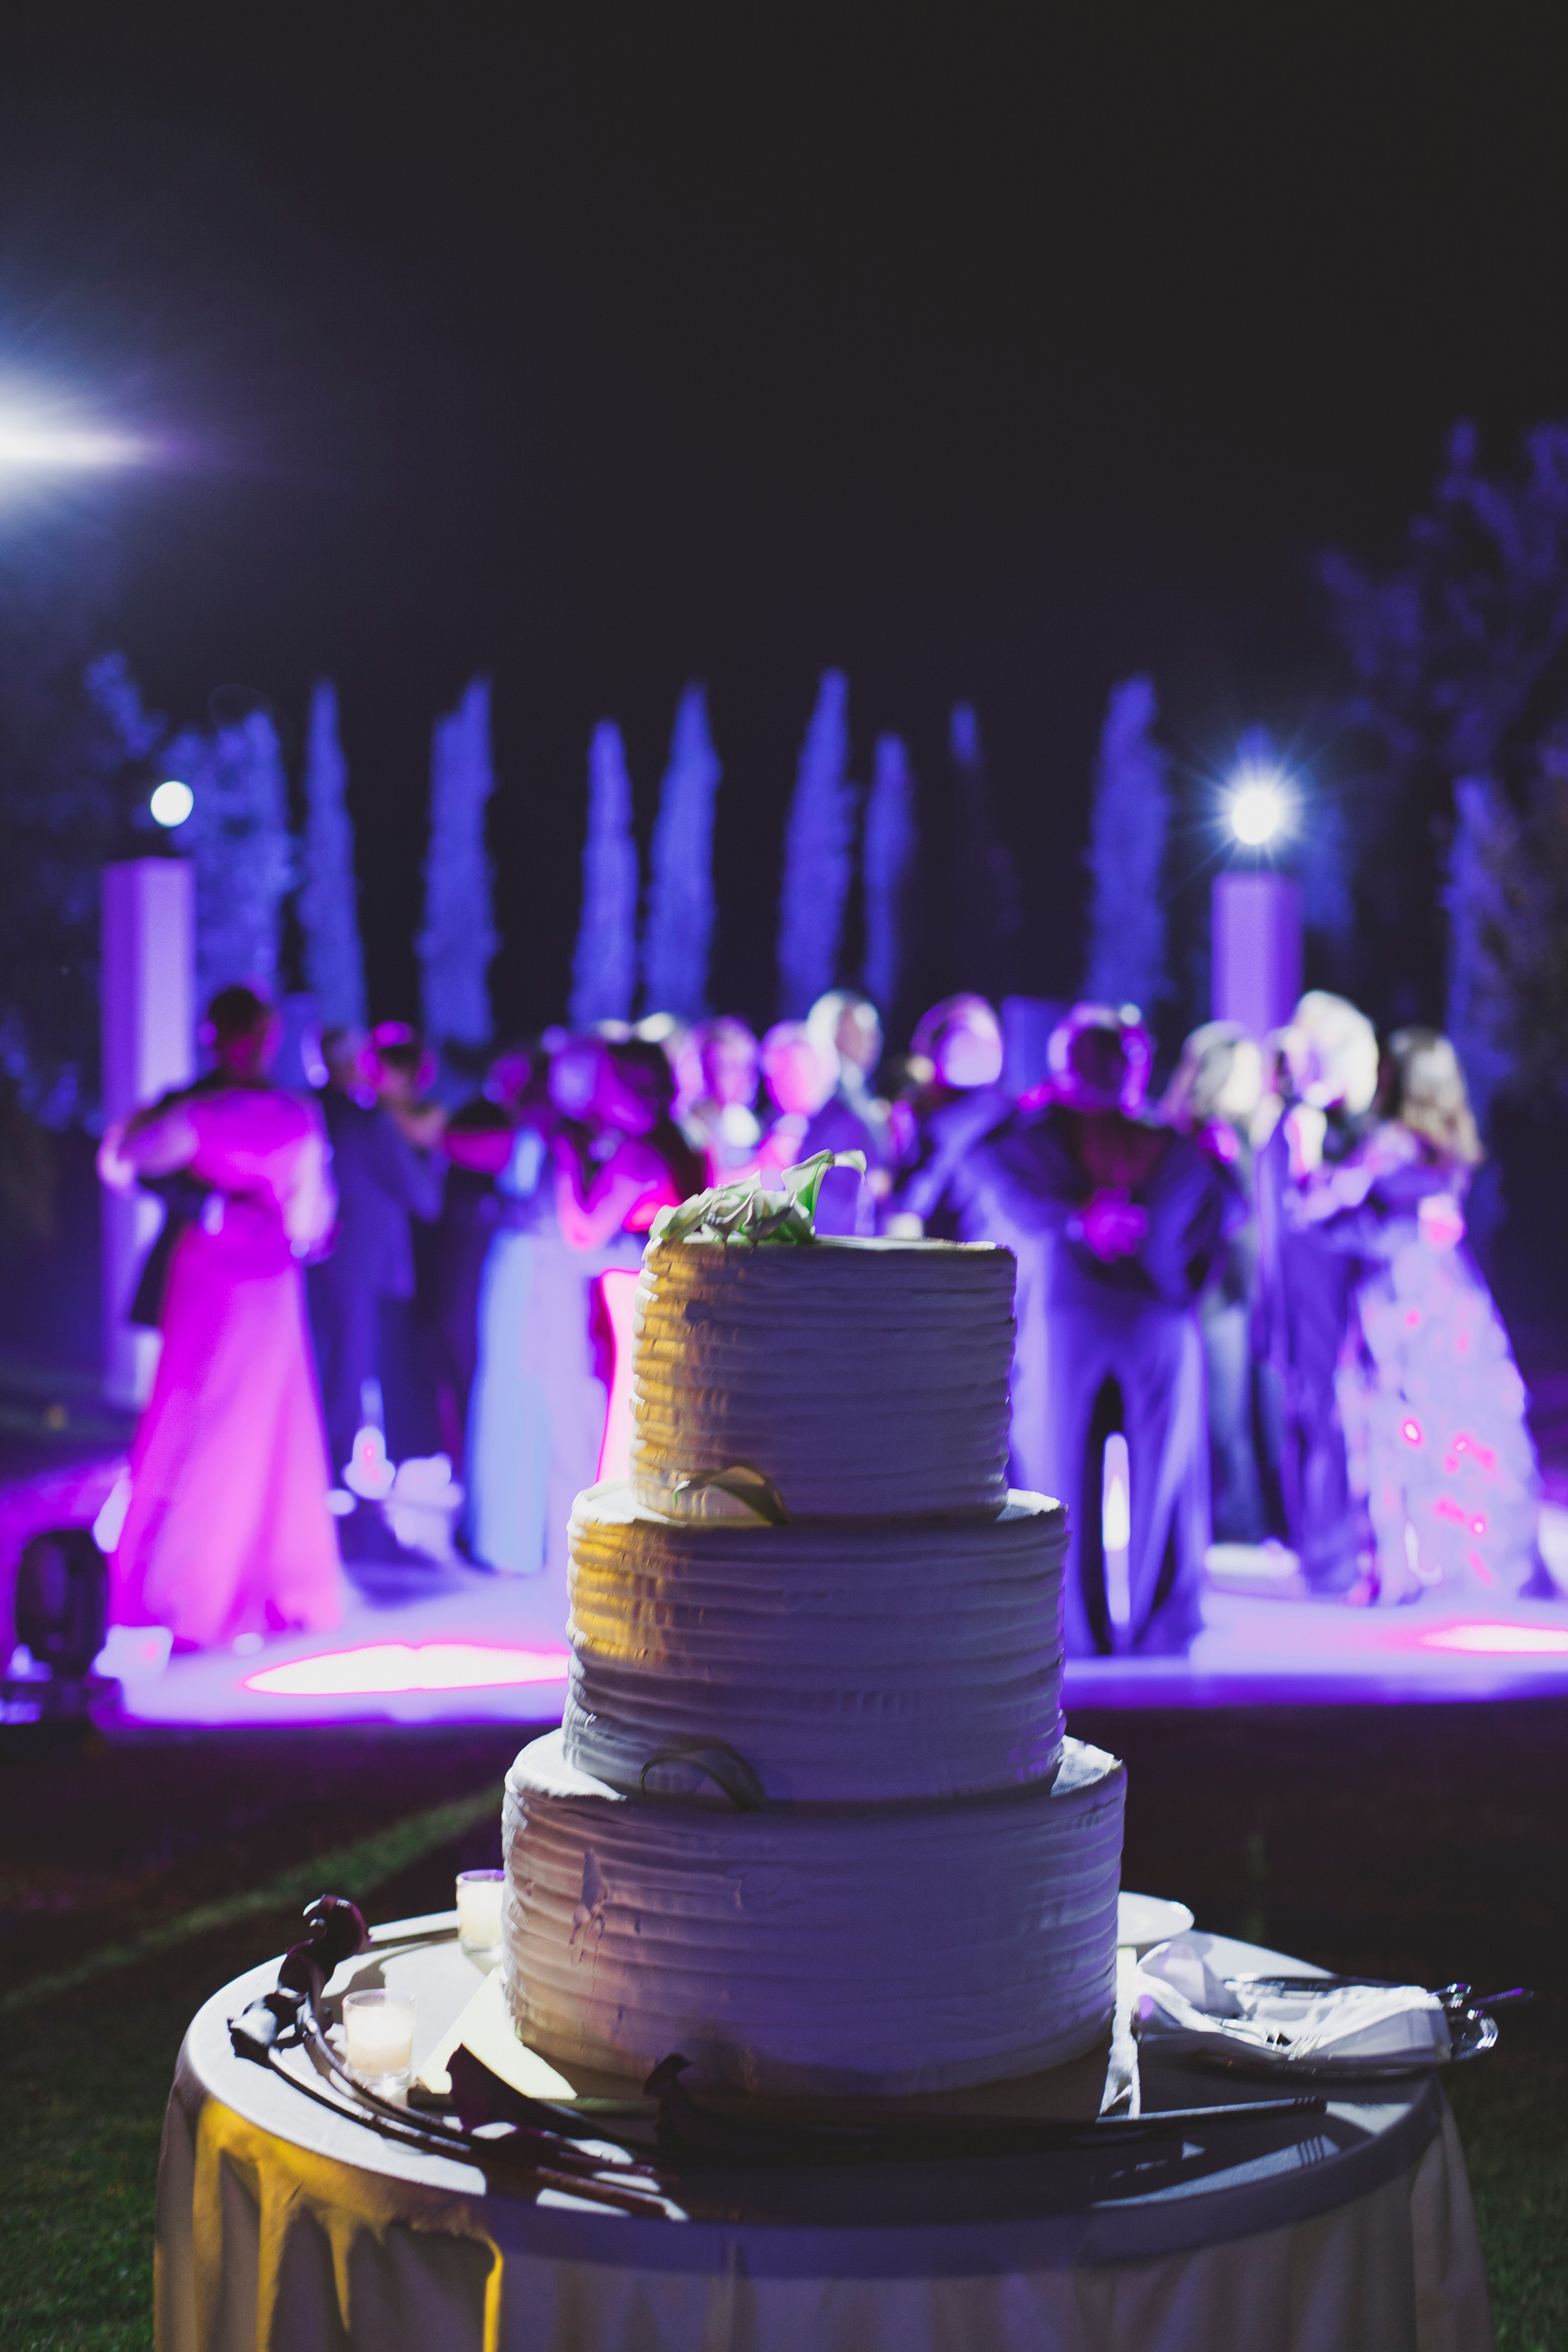 wedding cake with guests on the background